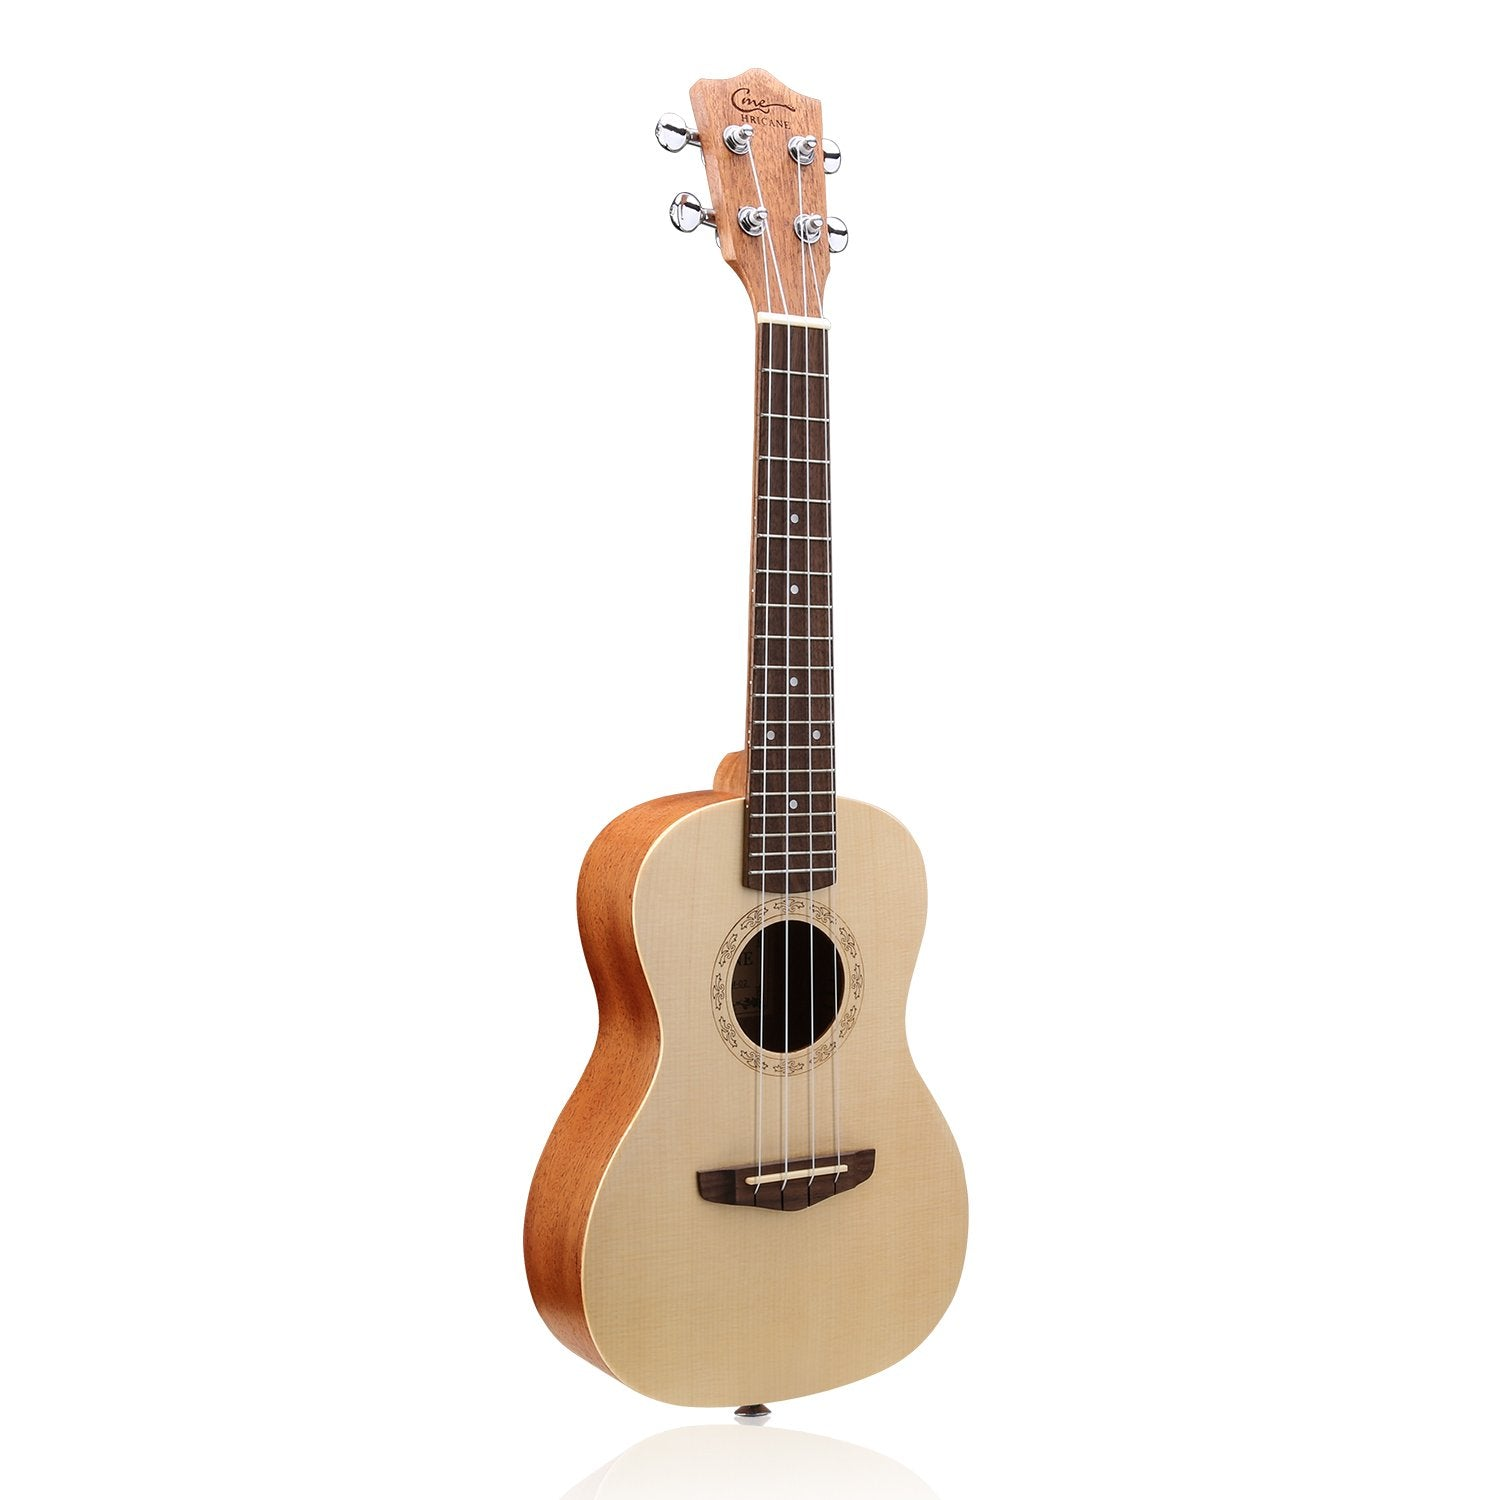 26 Inch Mahogany Solid Wood Spruce Top Tenor Ukulele